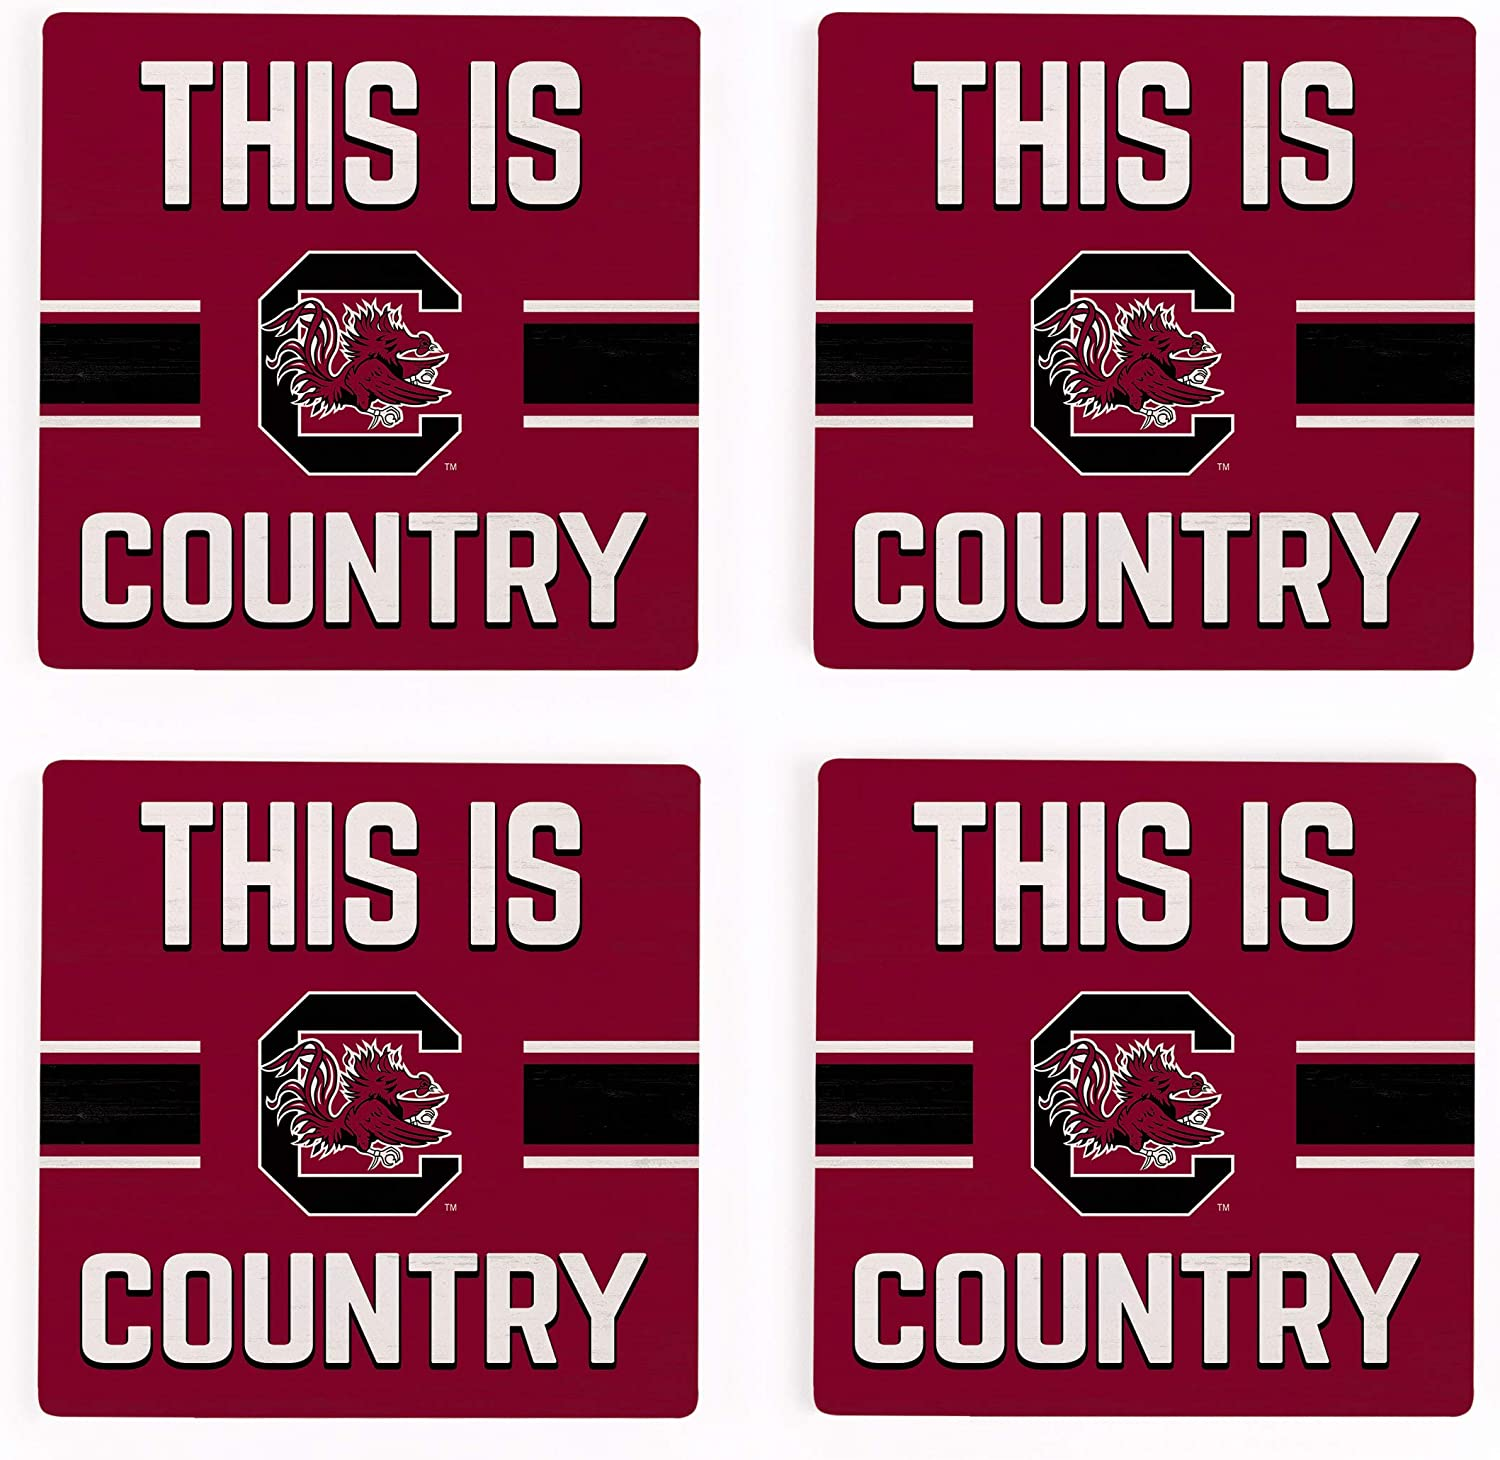 This is University of South Carolina NCAA 4 x 4 Absorbent Ceramic Coasters Pack of 4